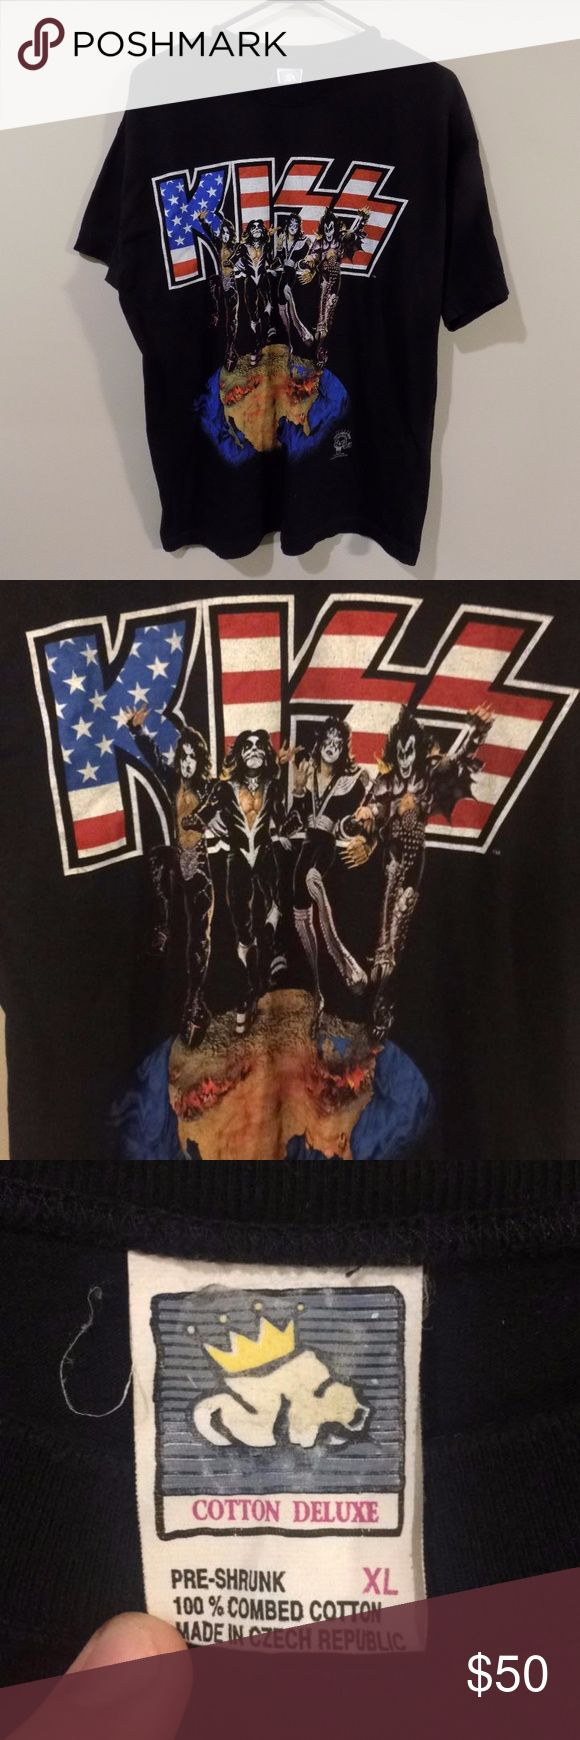 Vintage Kiss 1996 Alive/Worldwide Tour Band Tee Vintage Kiss 1996 Alive/Worldwide Tour Band Tee. Incredible vintage piece! Band tees are obviously in style, but what a grail! This shirt has some crazy graphics on it and is still in a 9/10 condition! Very hard piece to find! Actual concert shirt from Kiss 1996 Alive/Worldwide Tour! Vintage Shirts Tees - Short Sleeve